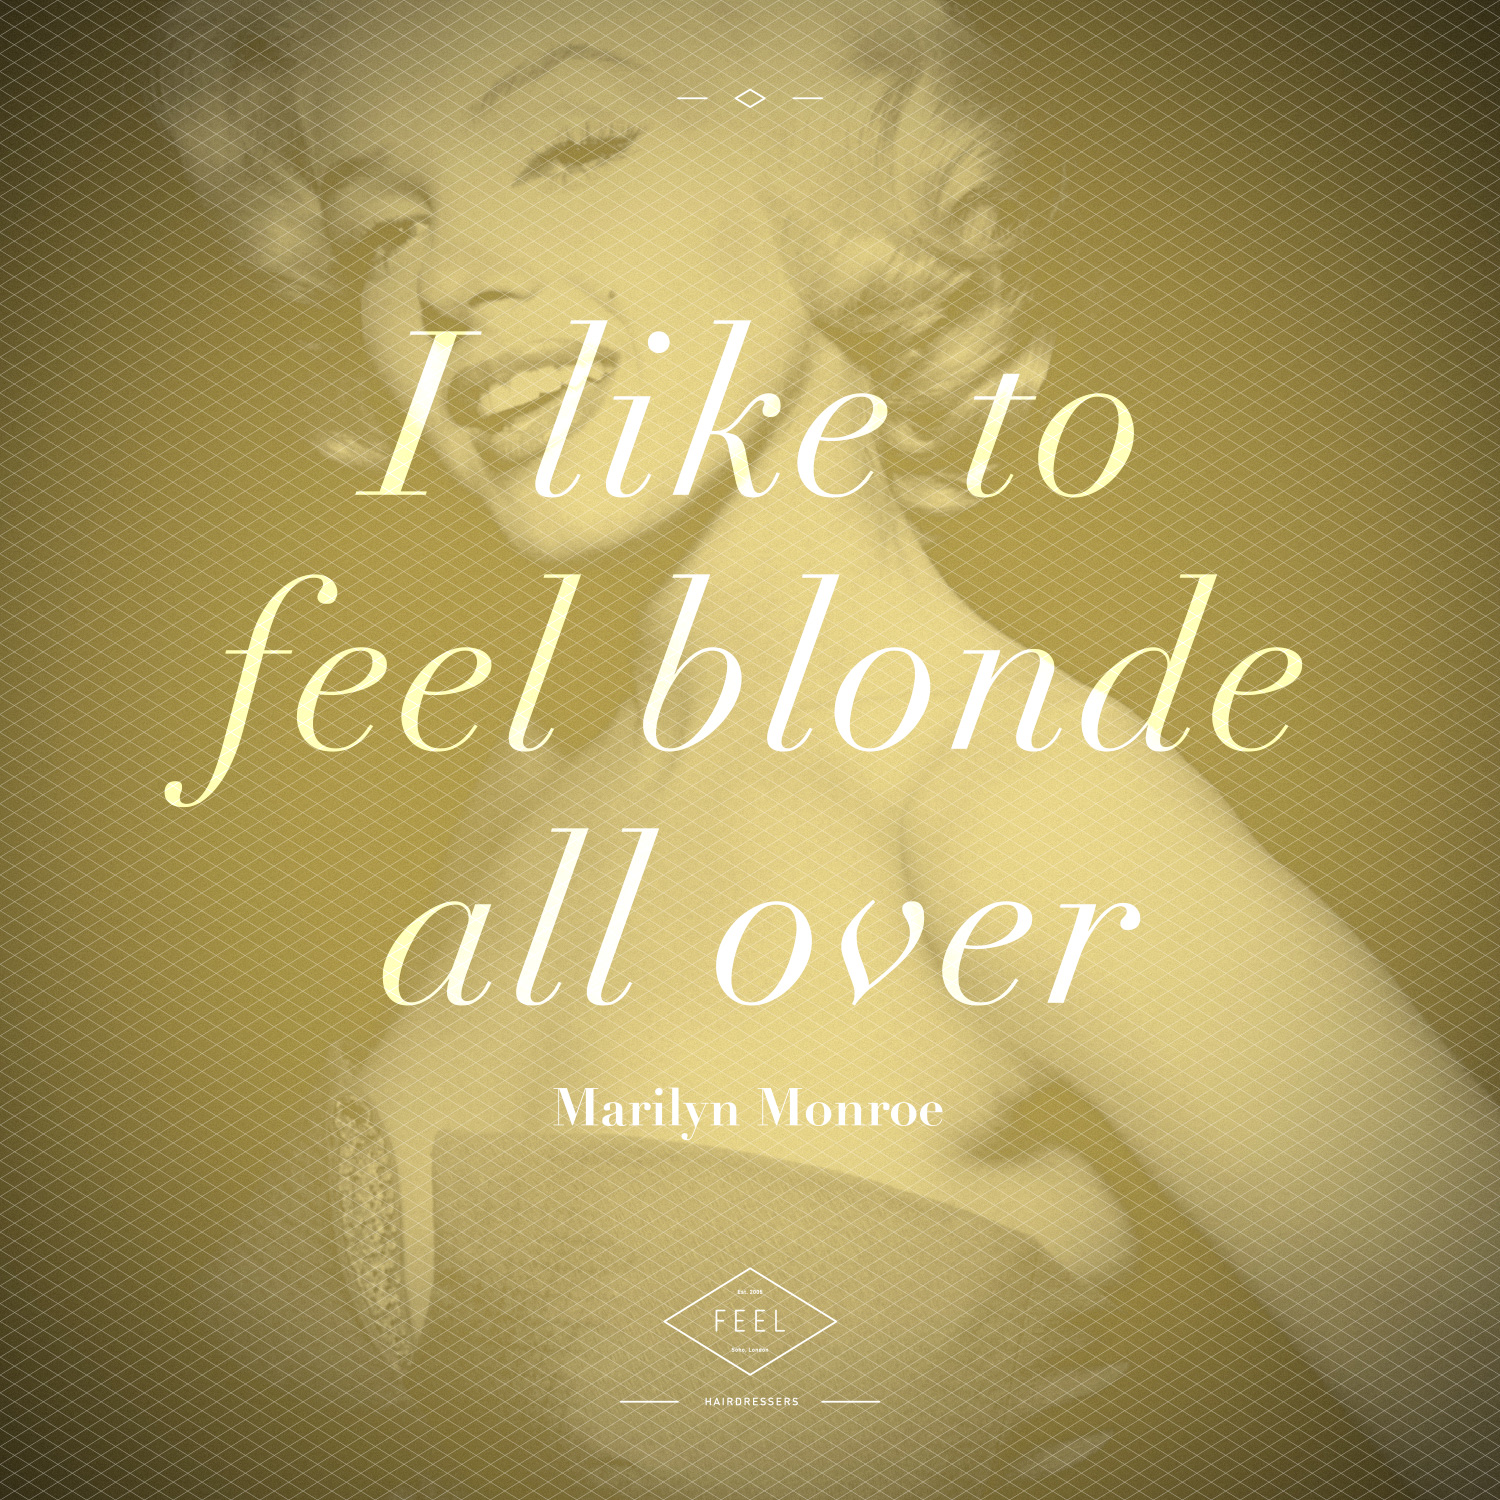 Yellow duotone - works well with the 'blonde' quote